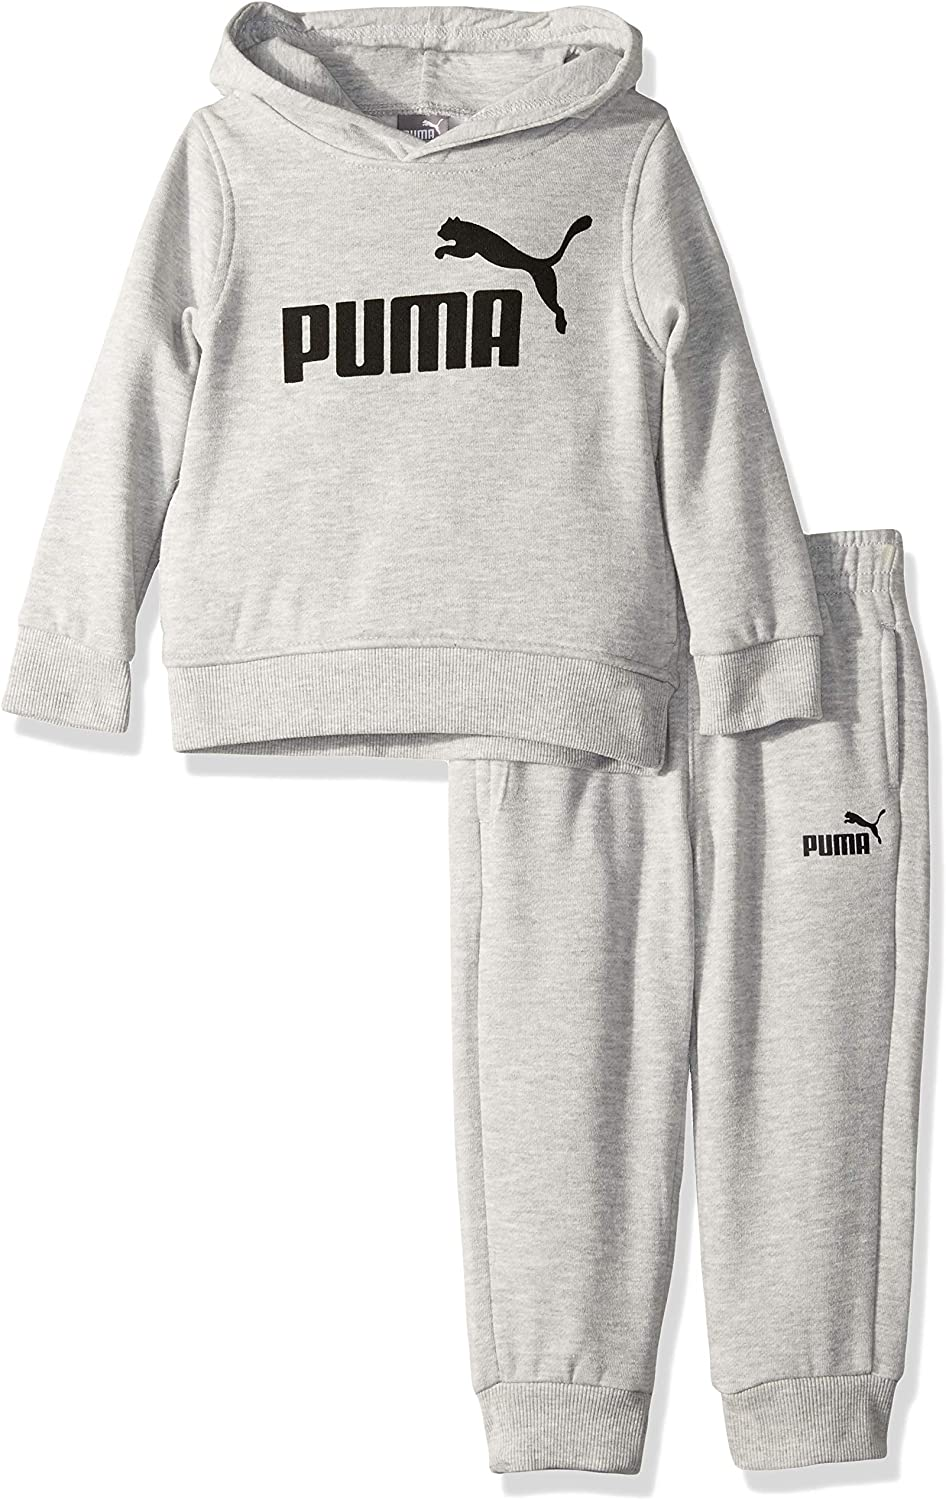 PUMA boys Fleece Pullover Hoodie & Jogger Set